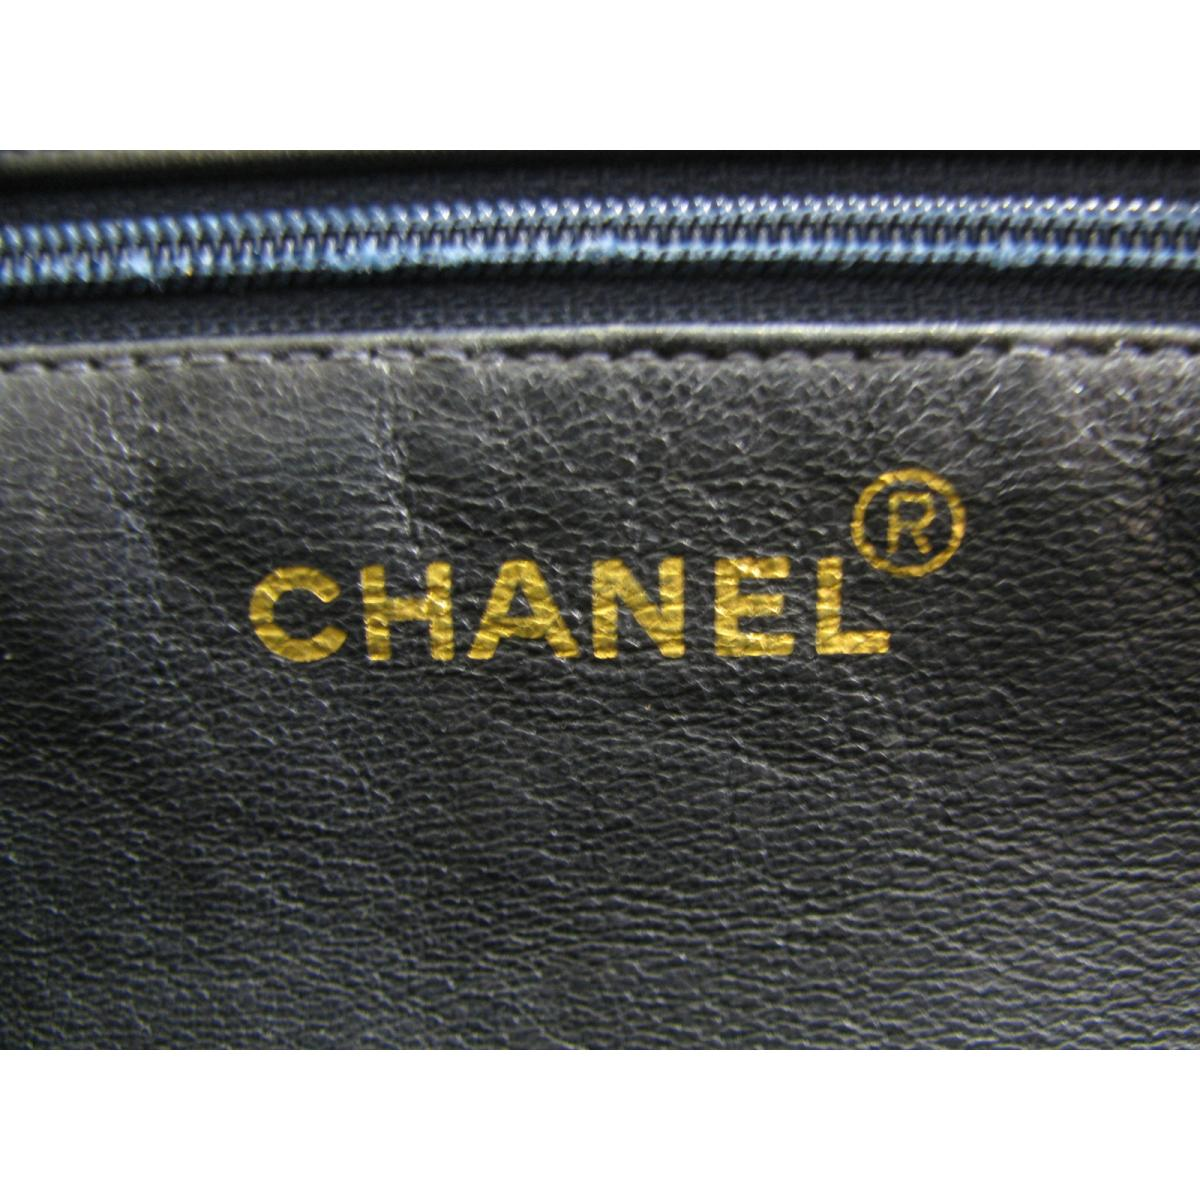 CHANEL バッグ  ココマーク チェーントート